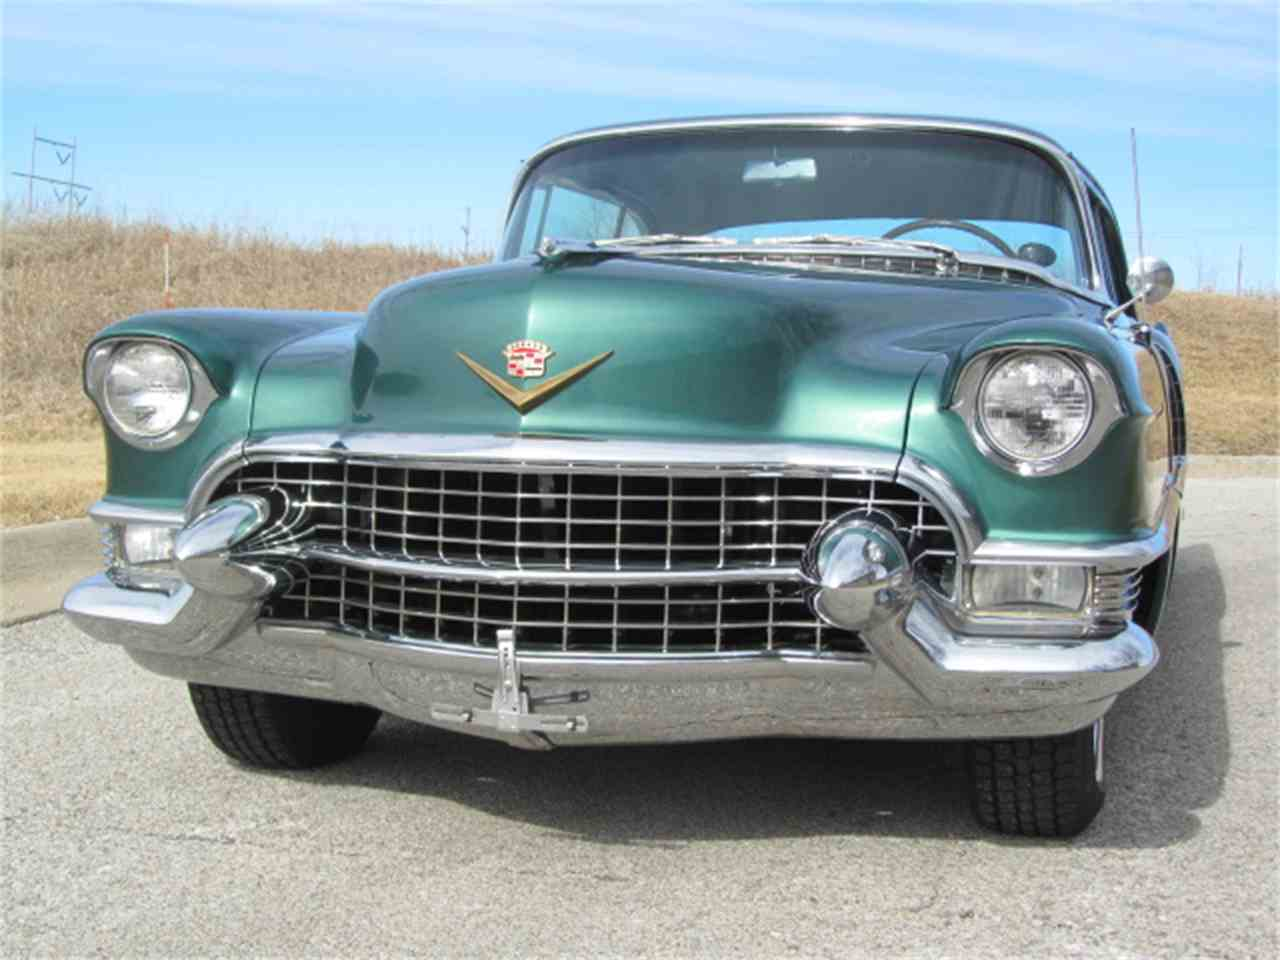 1955 Cadillac Series 62 Coupe DeVille for Sale | ClassicCars.com ...